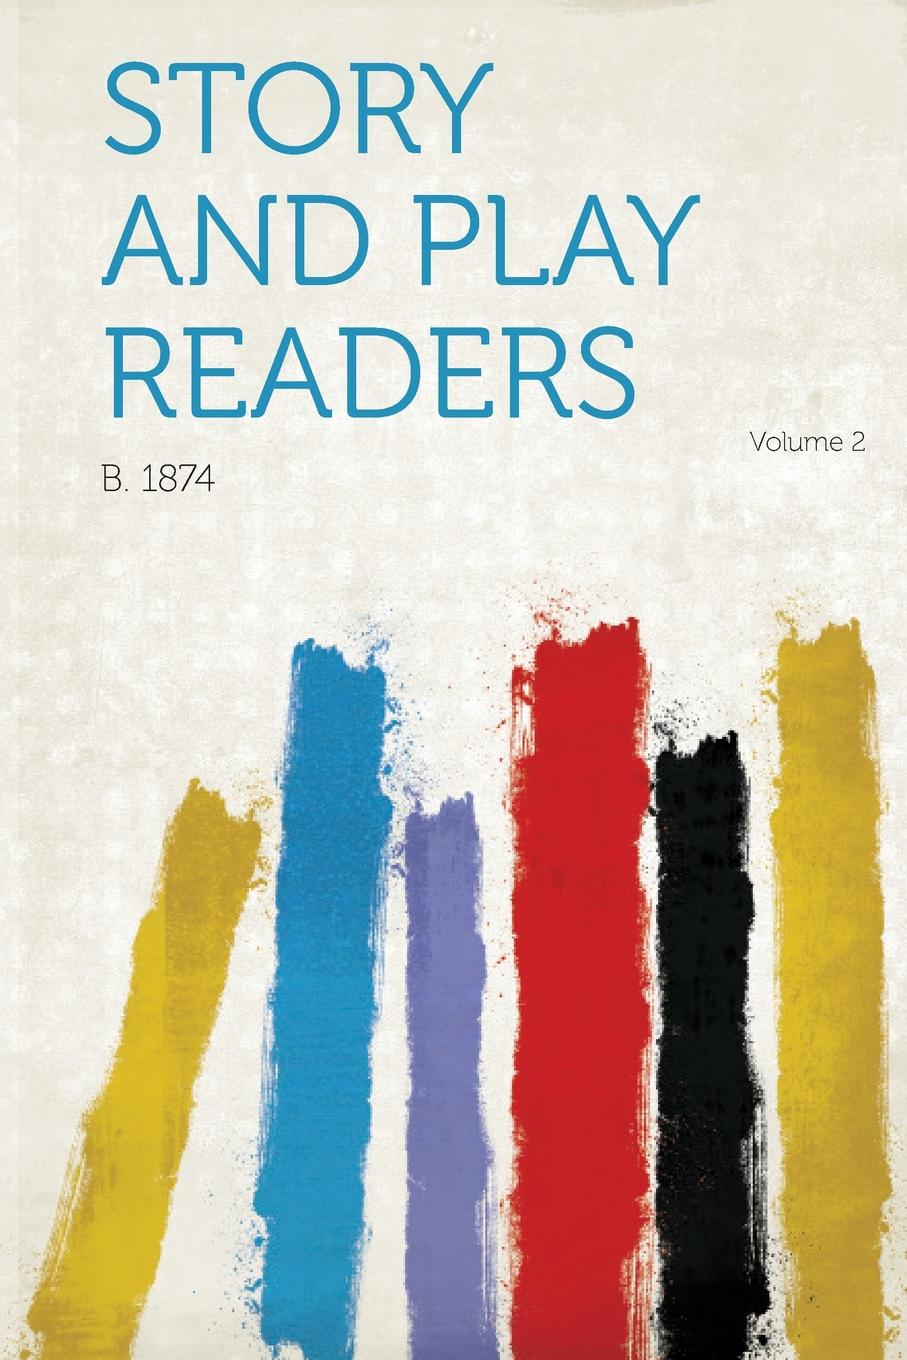 Story and Play Readers Volume 2